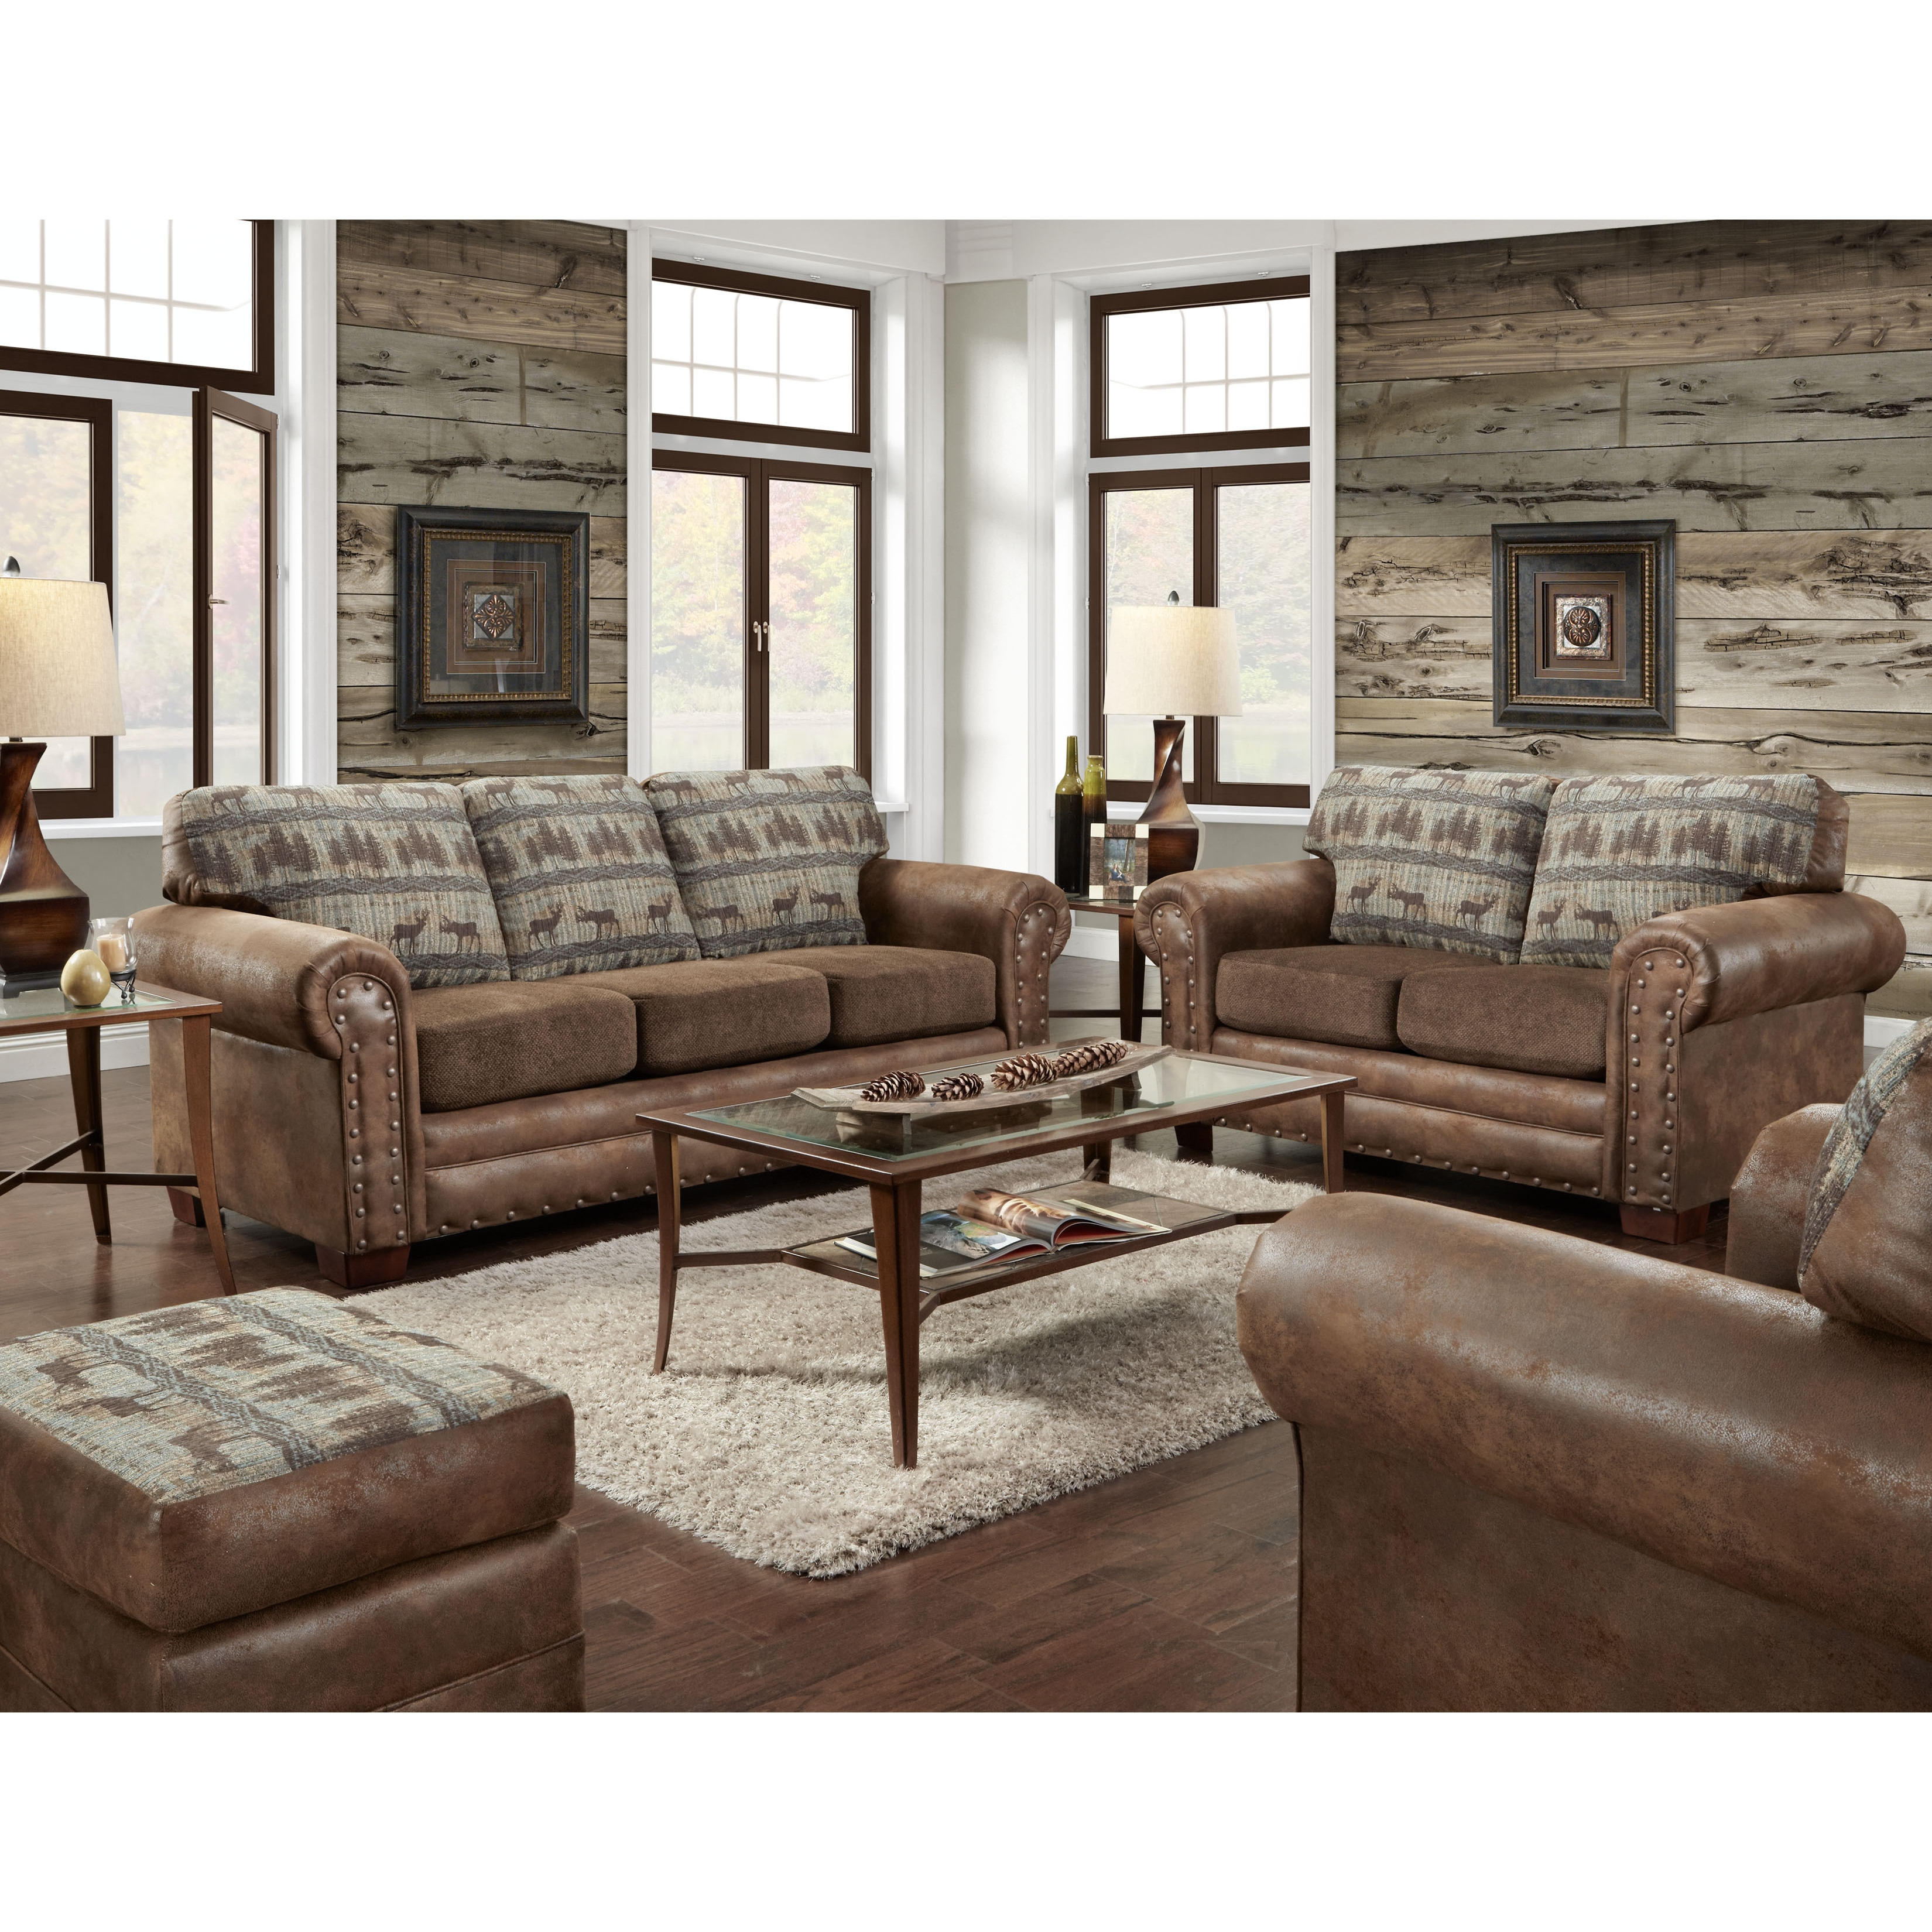 Shop American Furniture Classics Four Piece In Deer Teal Lodge On